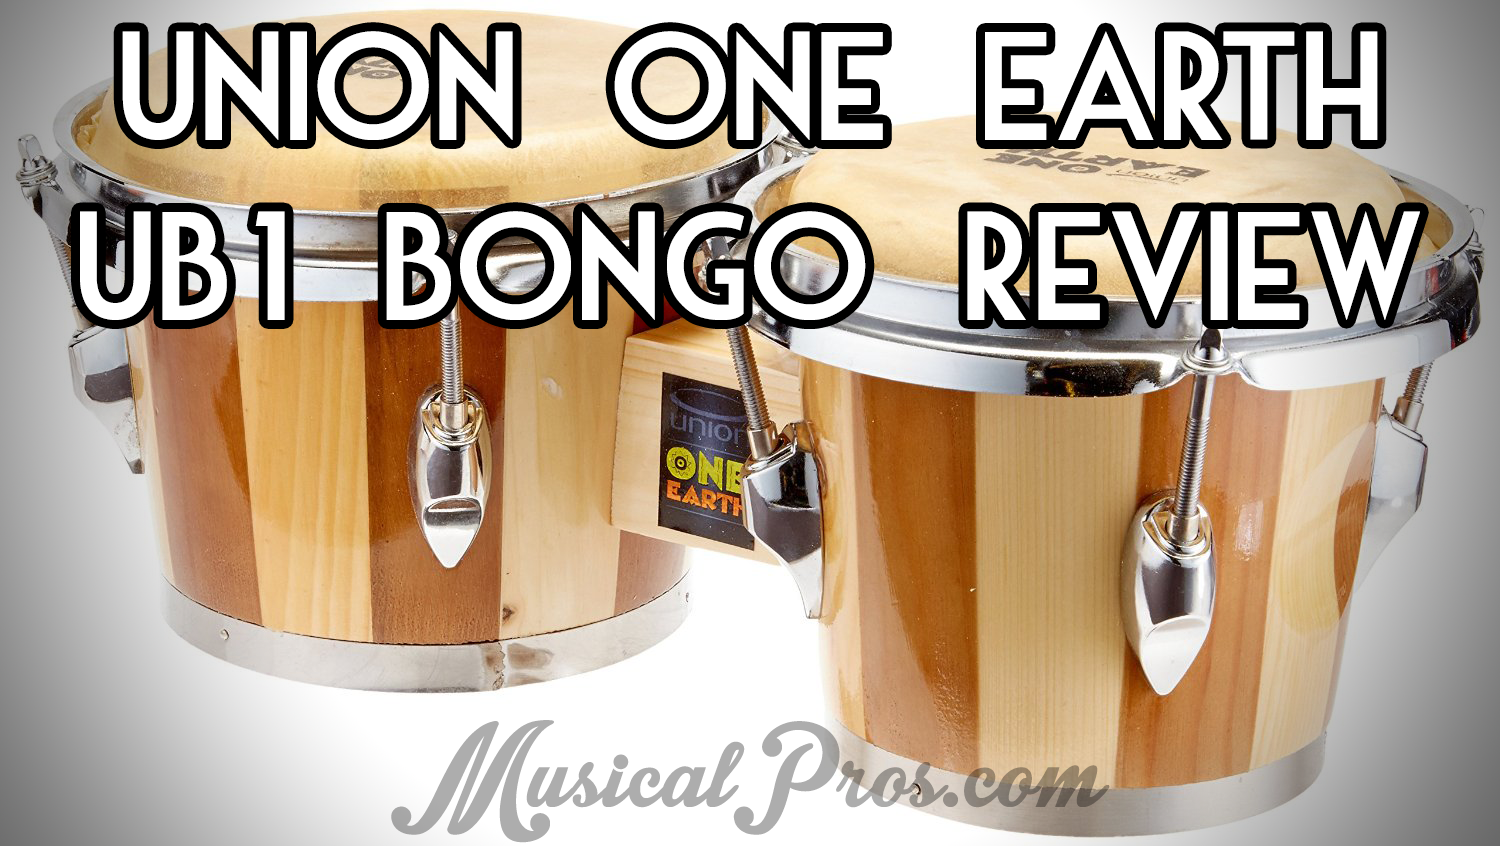 union one earth UB1 bongos review feature img